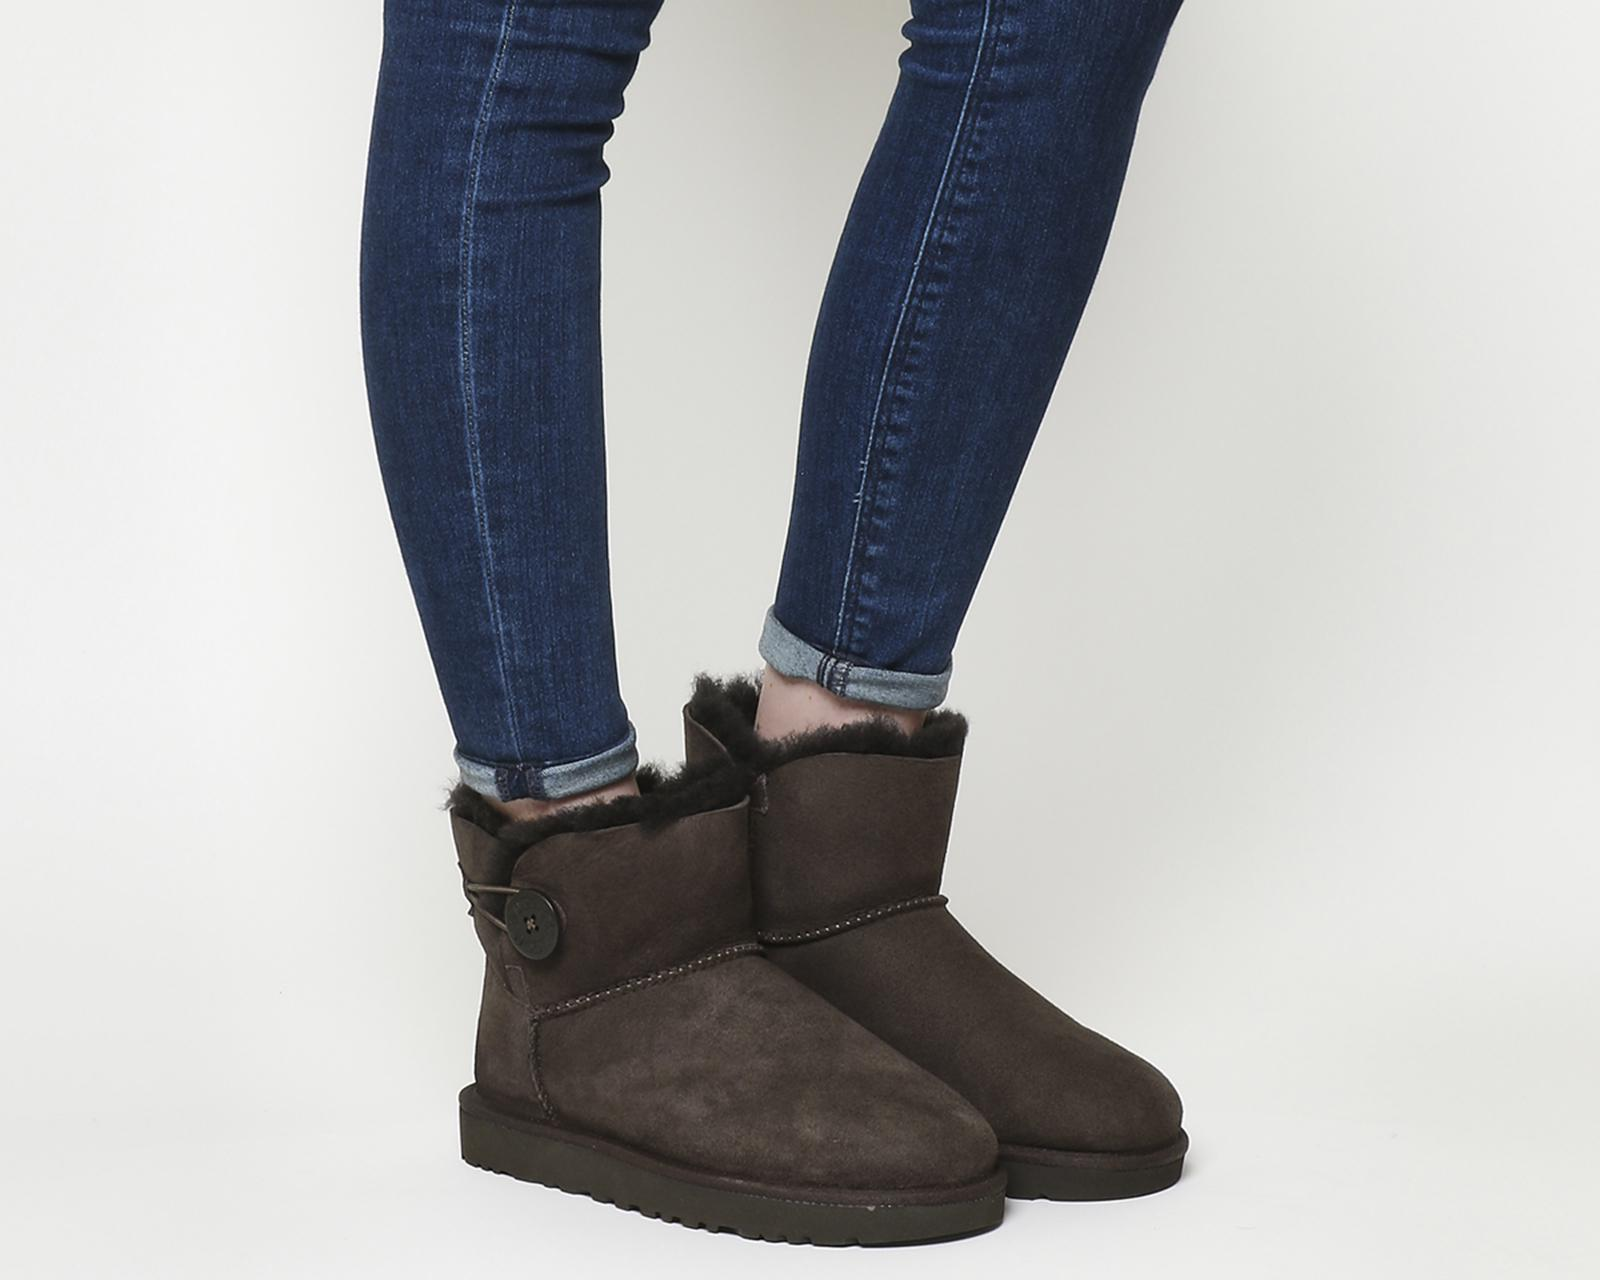 19adc2cc932 UGG Mini Bailey Button Ii Boots in Brown - Lyst